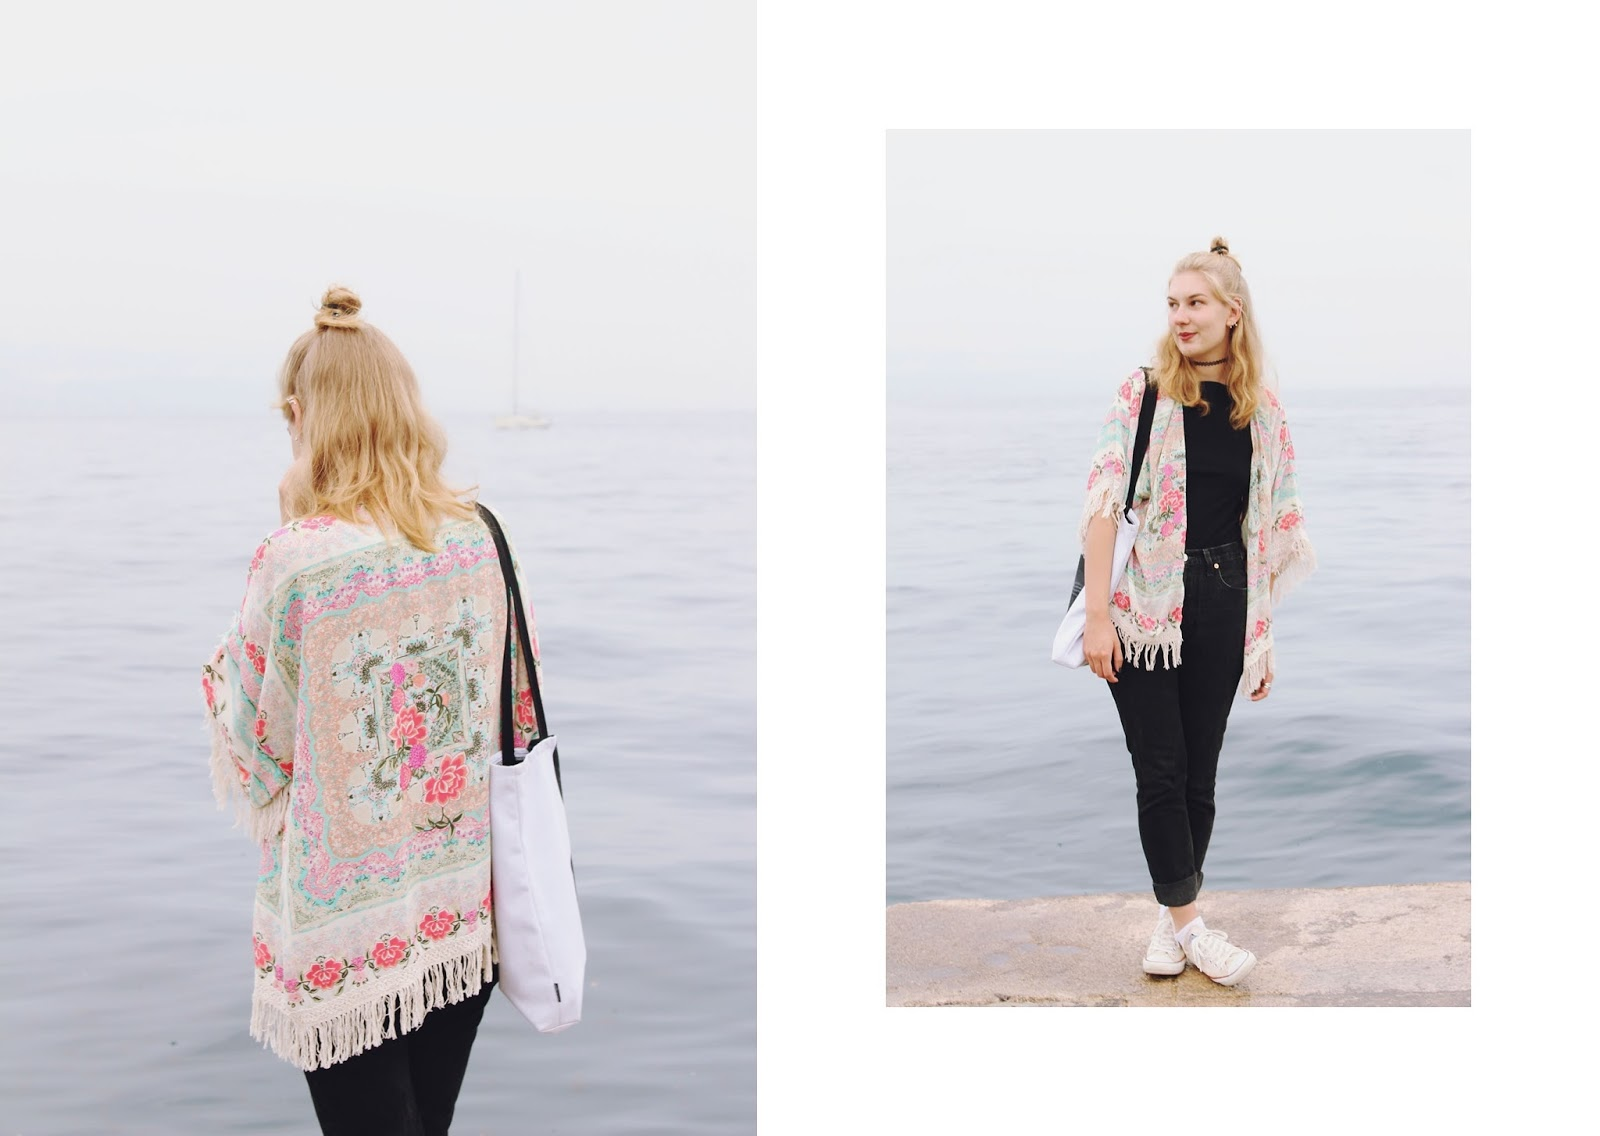 youarethepoet, filipa canic, you are the poet blog, filipa canic blog, romwe, sea, opatija, kimono,